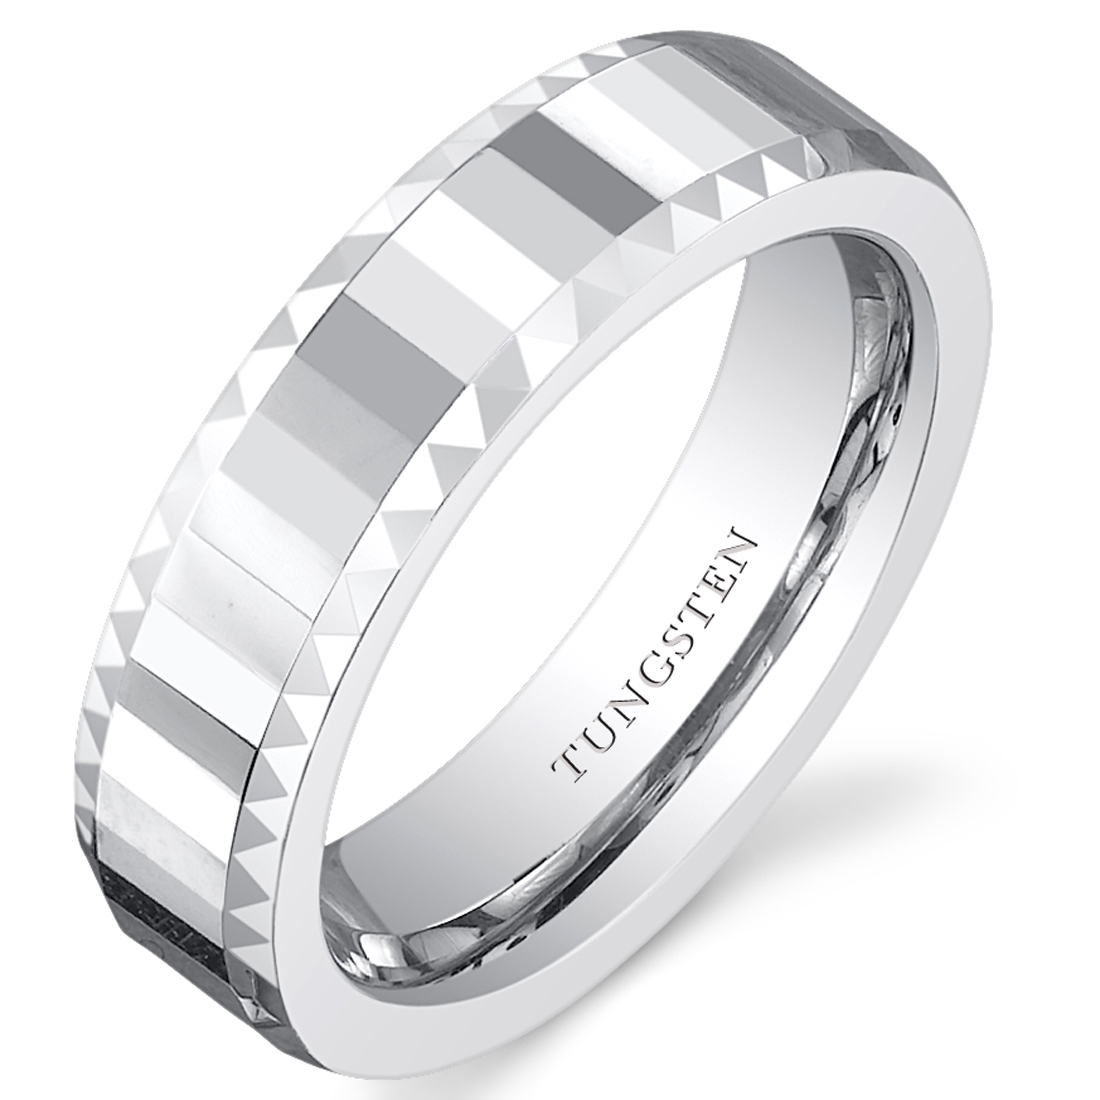 Faceted 5mm Womens White Tungsten Wedding Band Ring Available In Sizes 5 To 8